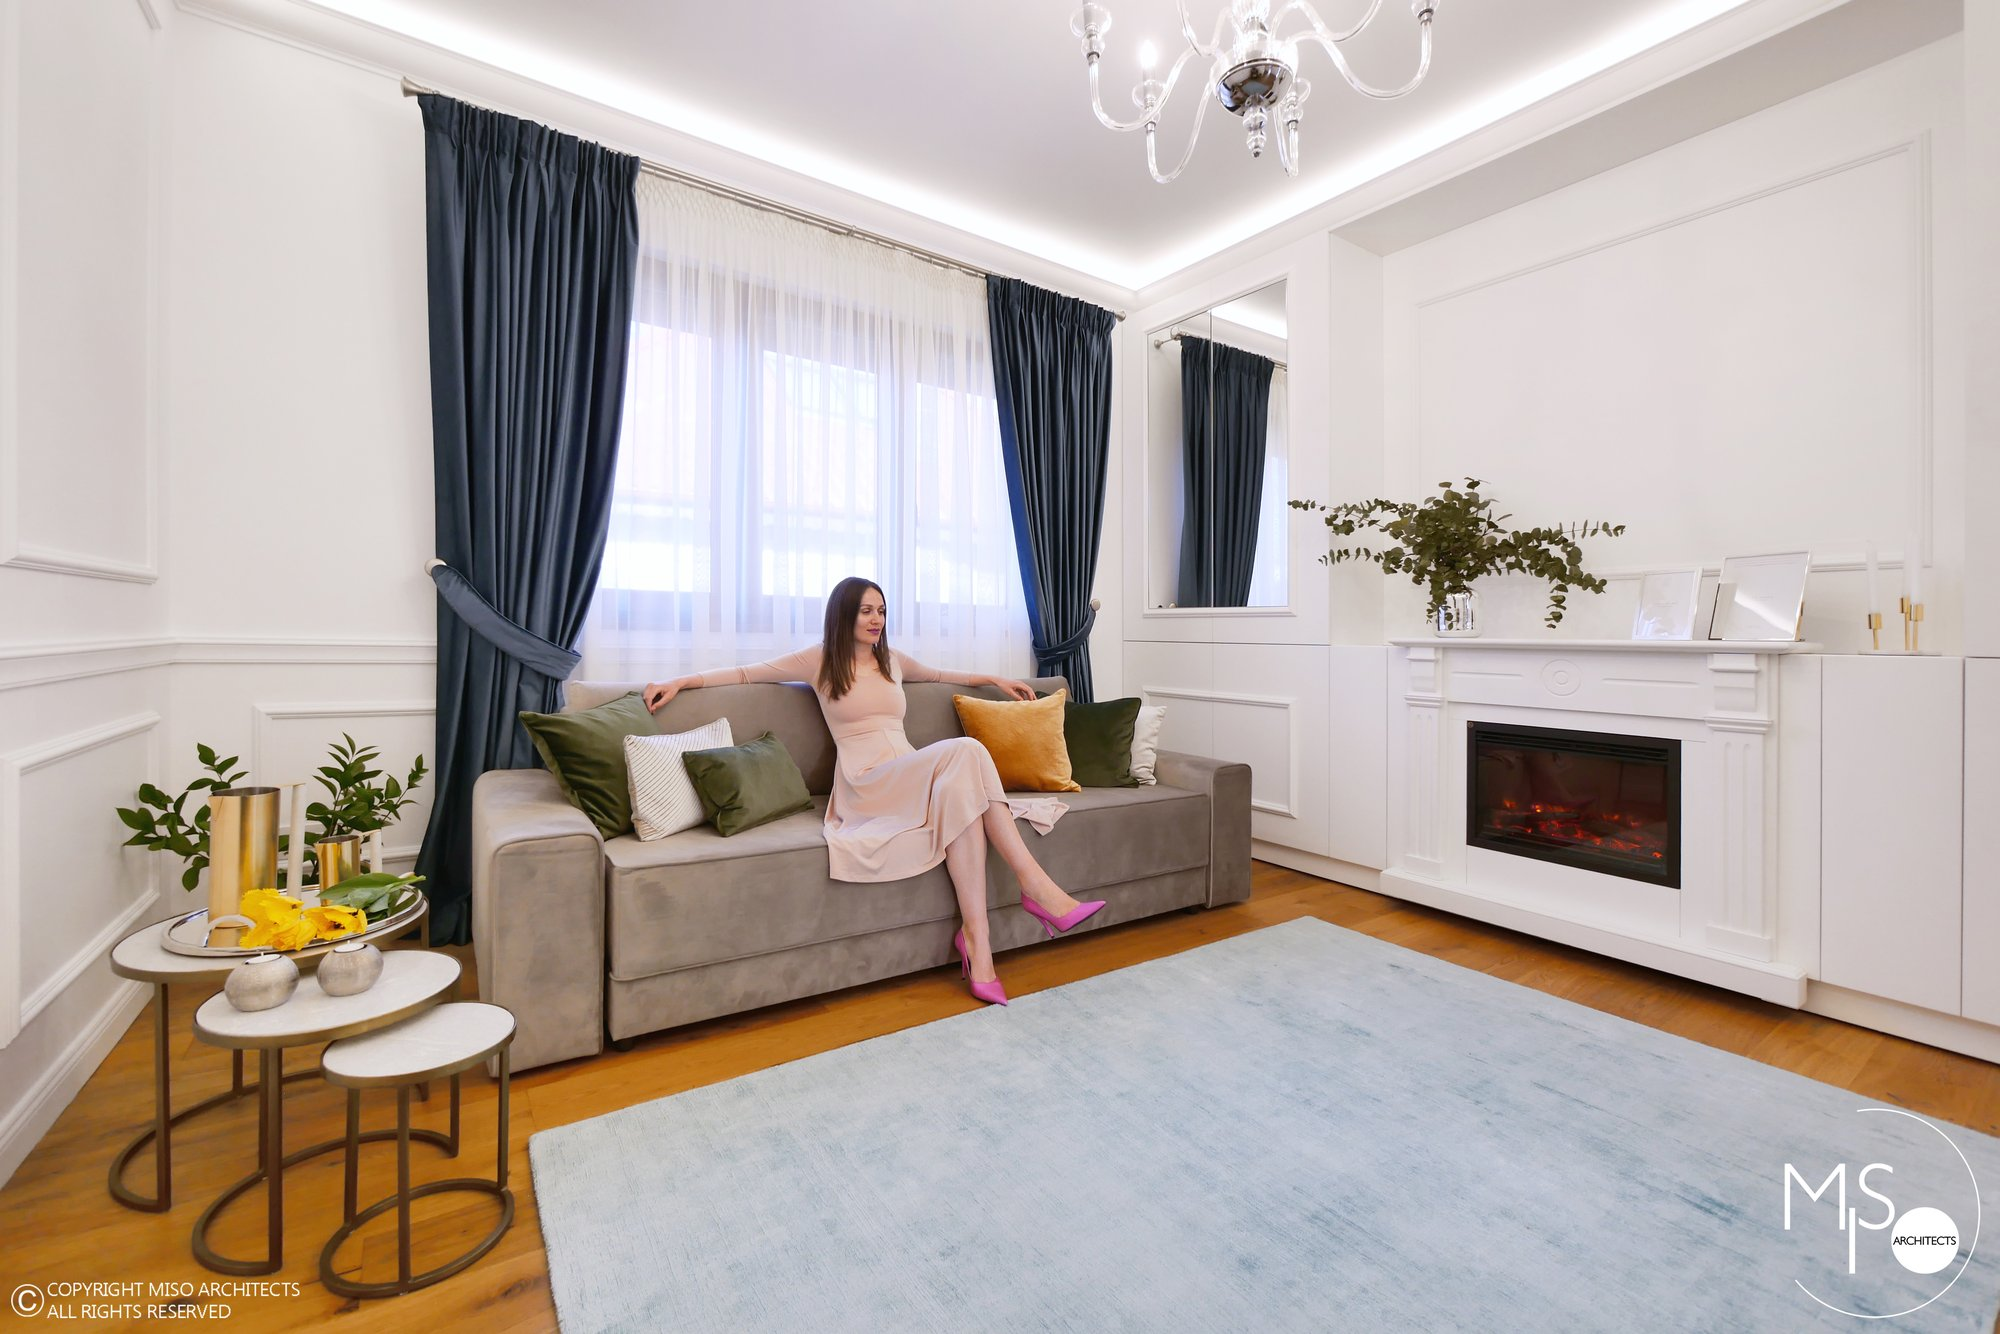 set-masute-the-home-bucuresti.jpg